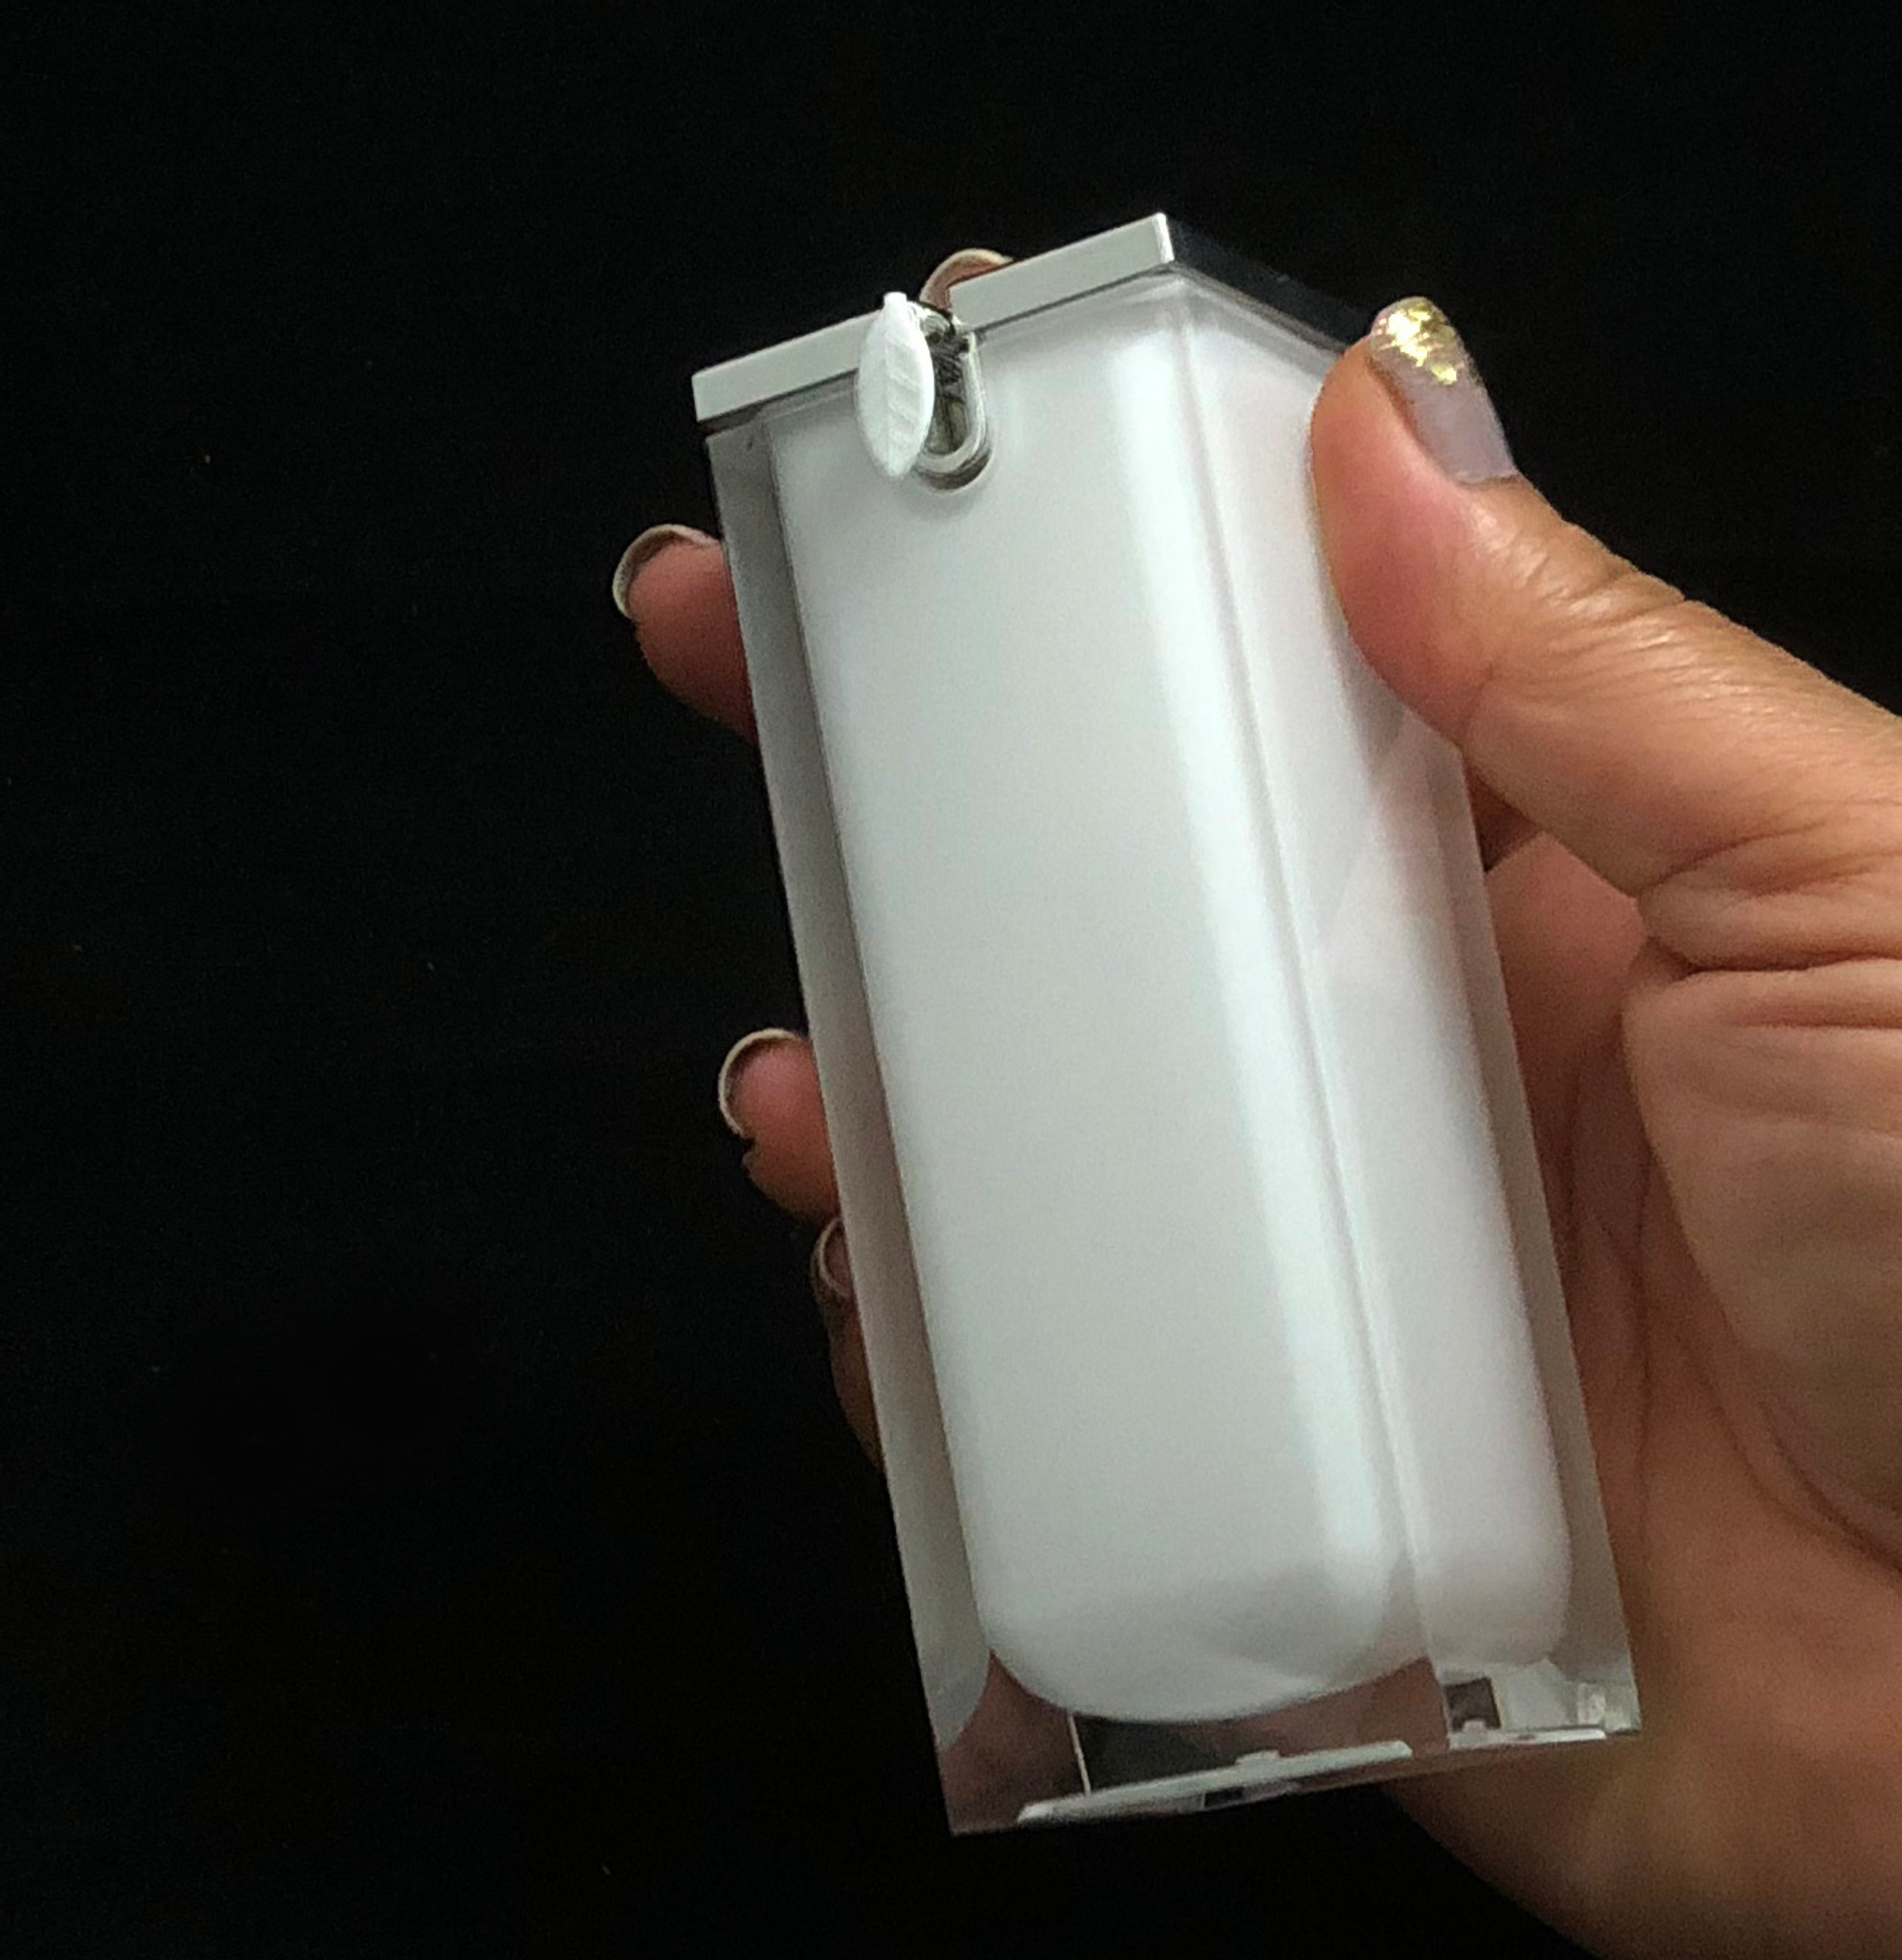 Luxury Airless Bottles - New Product at Beauty Makeup Supply